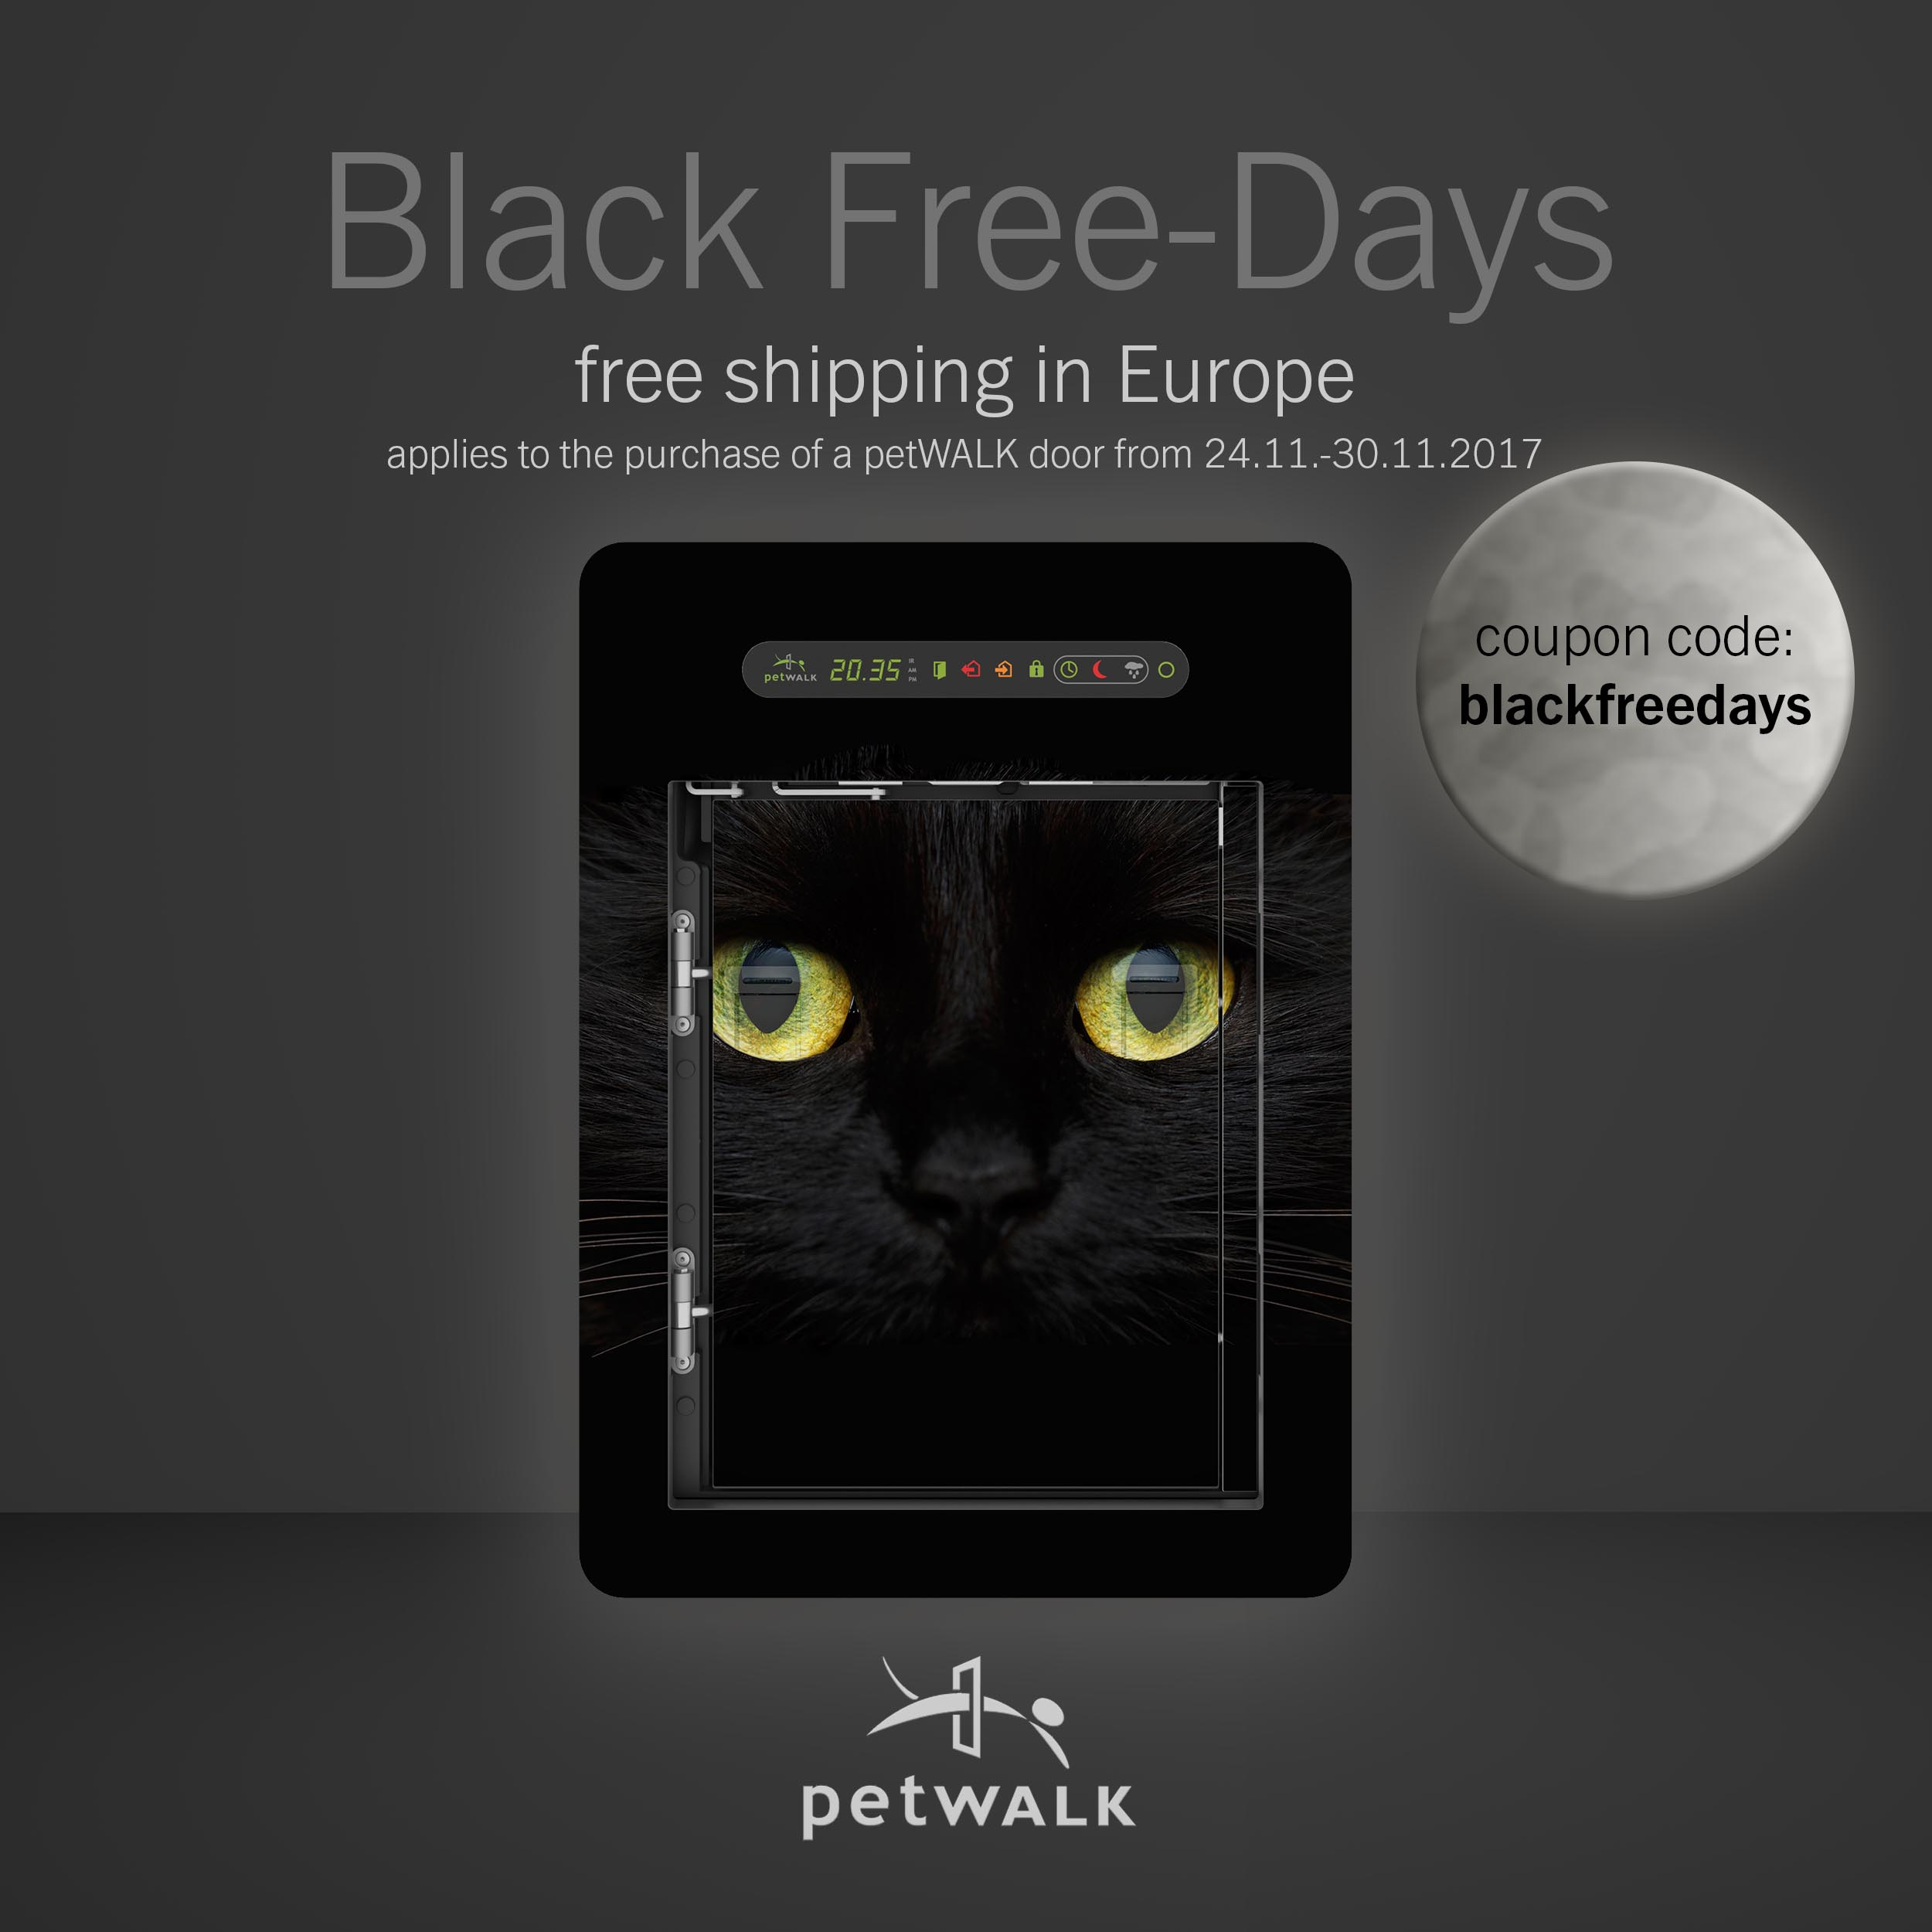 Use the code 'blackfreedays' to save on shipping costs in Europe.